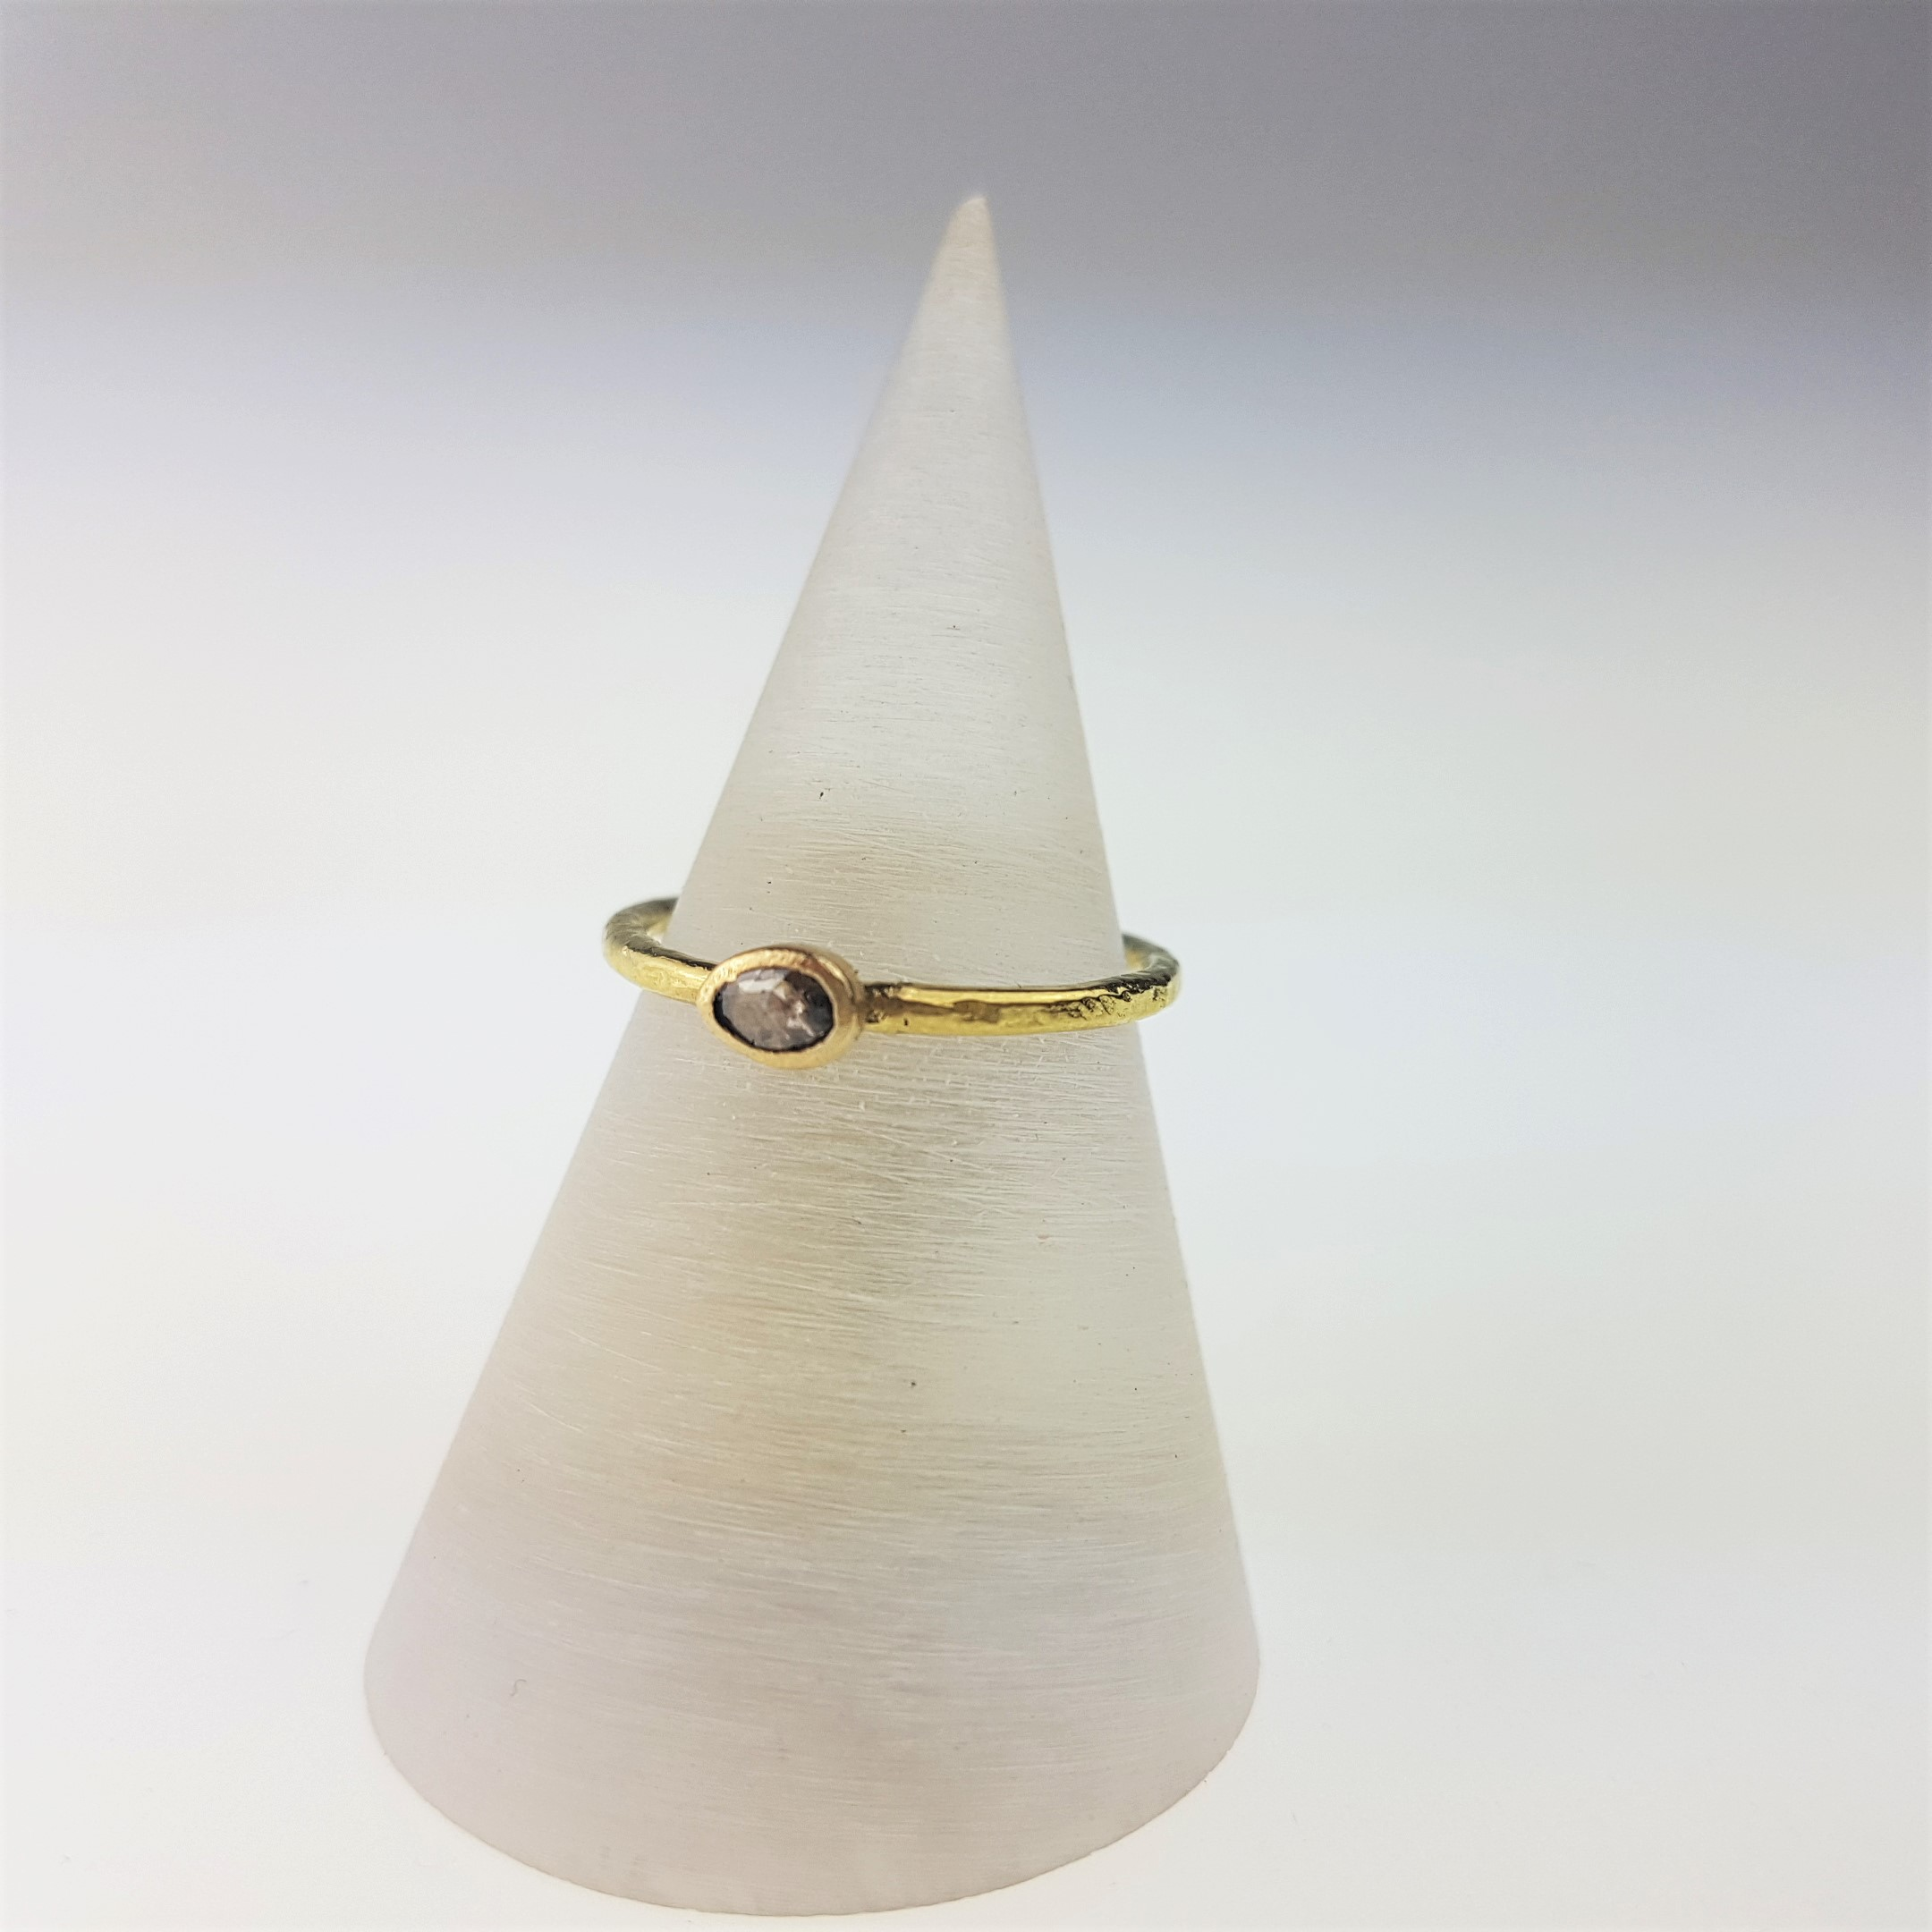 Indian Treasure - Poppy Dandiya is known for his sumptuous gems inspired by the rich colours of India where he has now retired from jewellery making. In his final collection available at Gill Wing, he also made a rare few diamond rings including this dainty brown rose cut diamond on a hammered 18ct yellow gold band, £475.